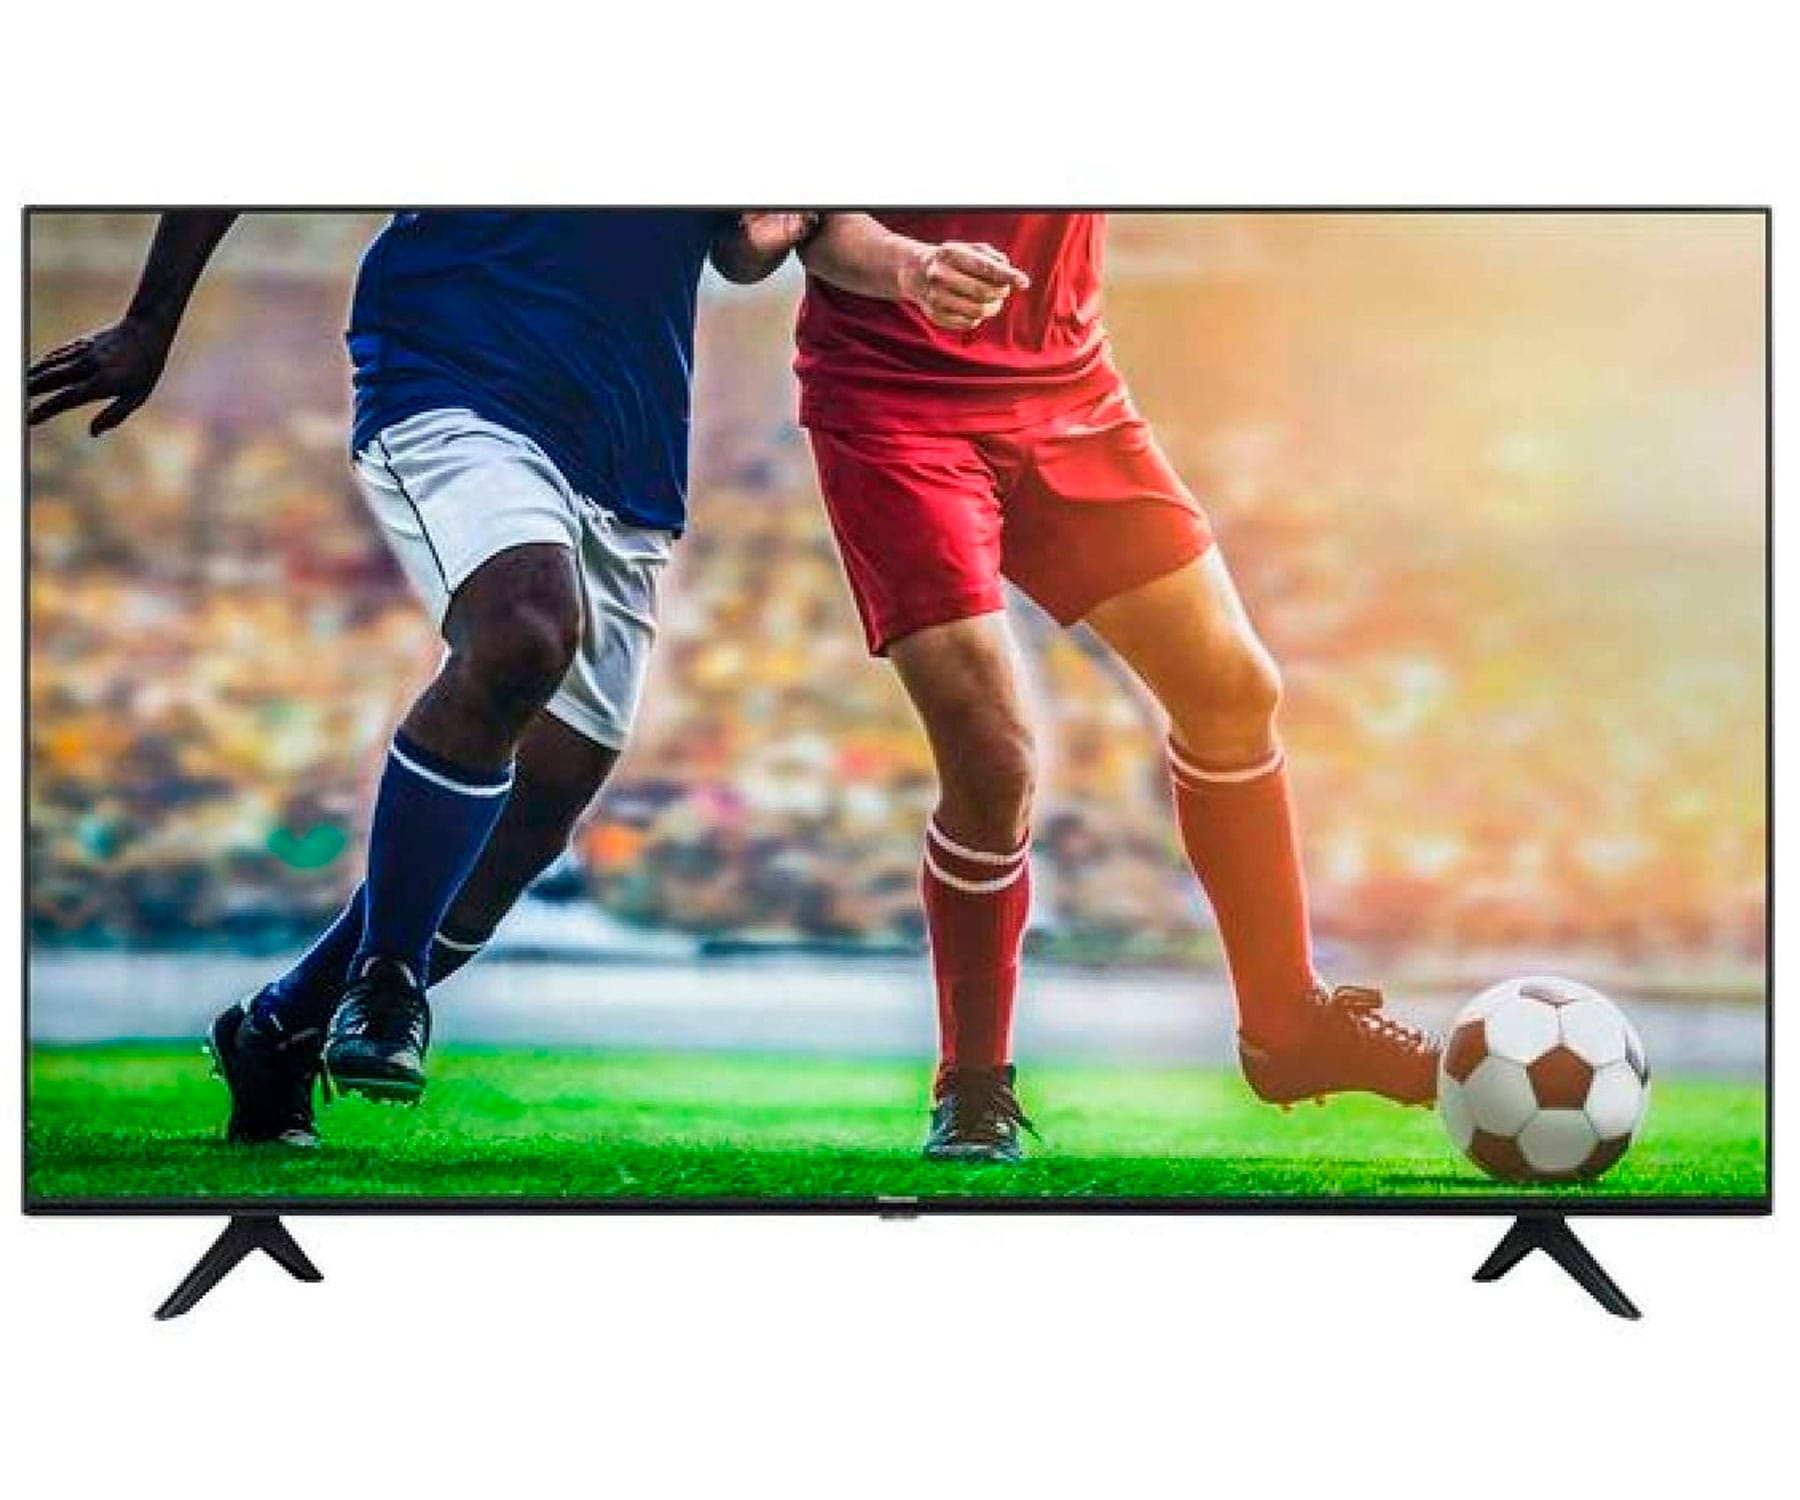 HISENSE H65A7100F TELEVISOR 65'' SMART TV LED 4K UHD HDR 1600PCI CI+ HDMI USB  BLUETOOTH